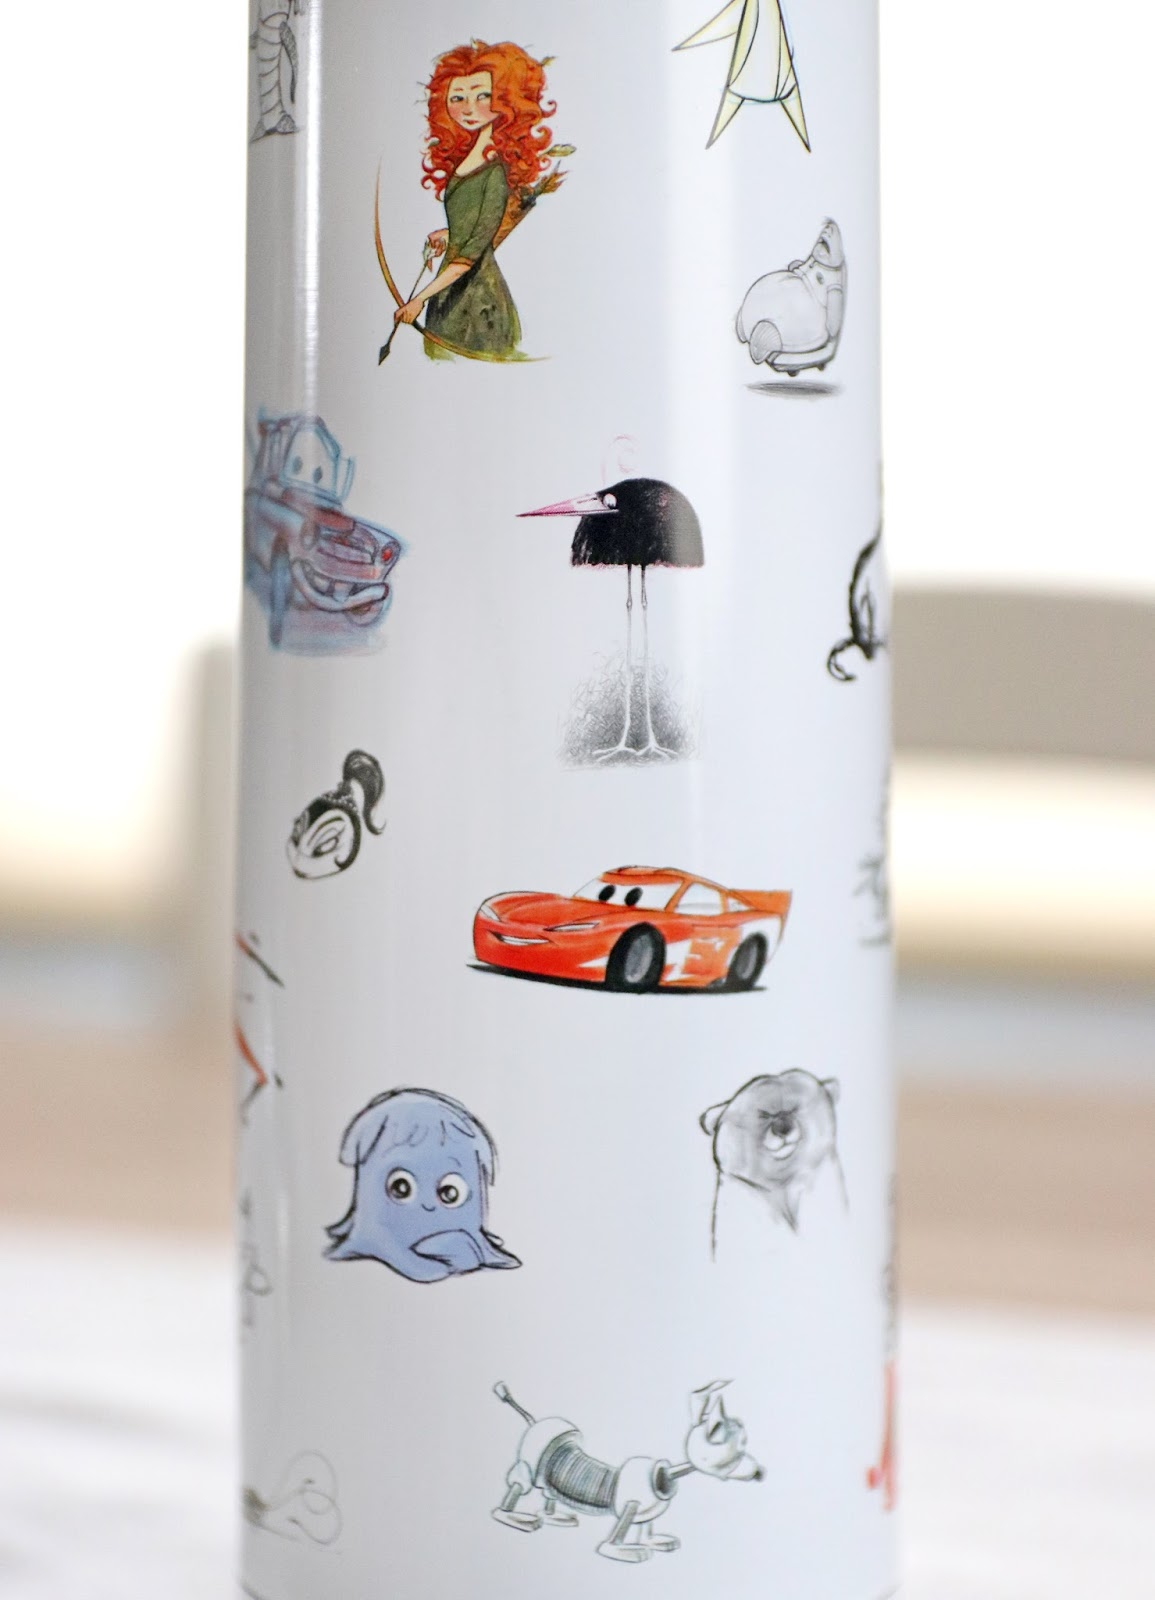 d23 expo pixar concept sketch art water bottle